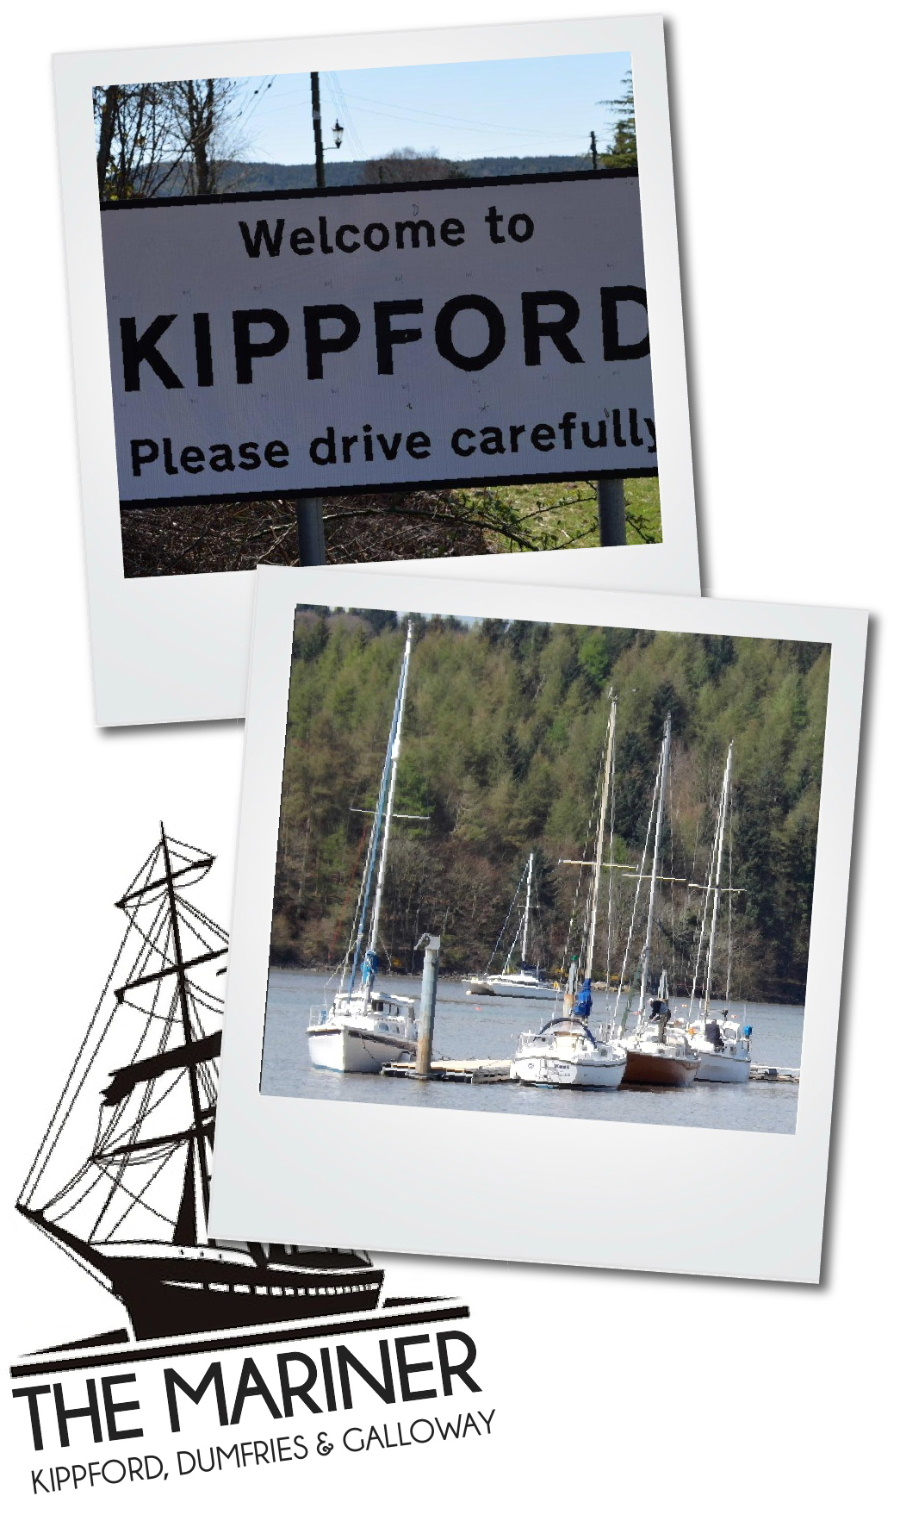 Travel Directions to the Mariner, Kippford